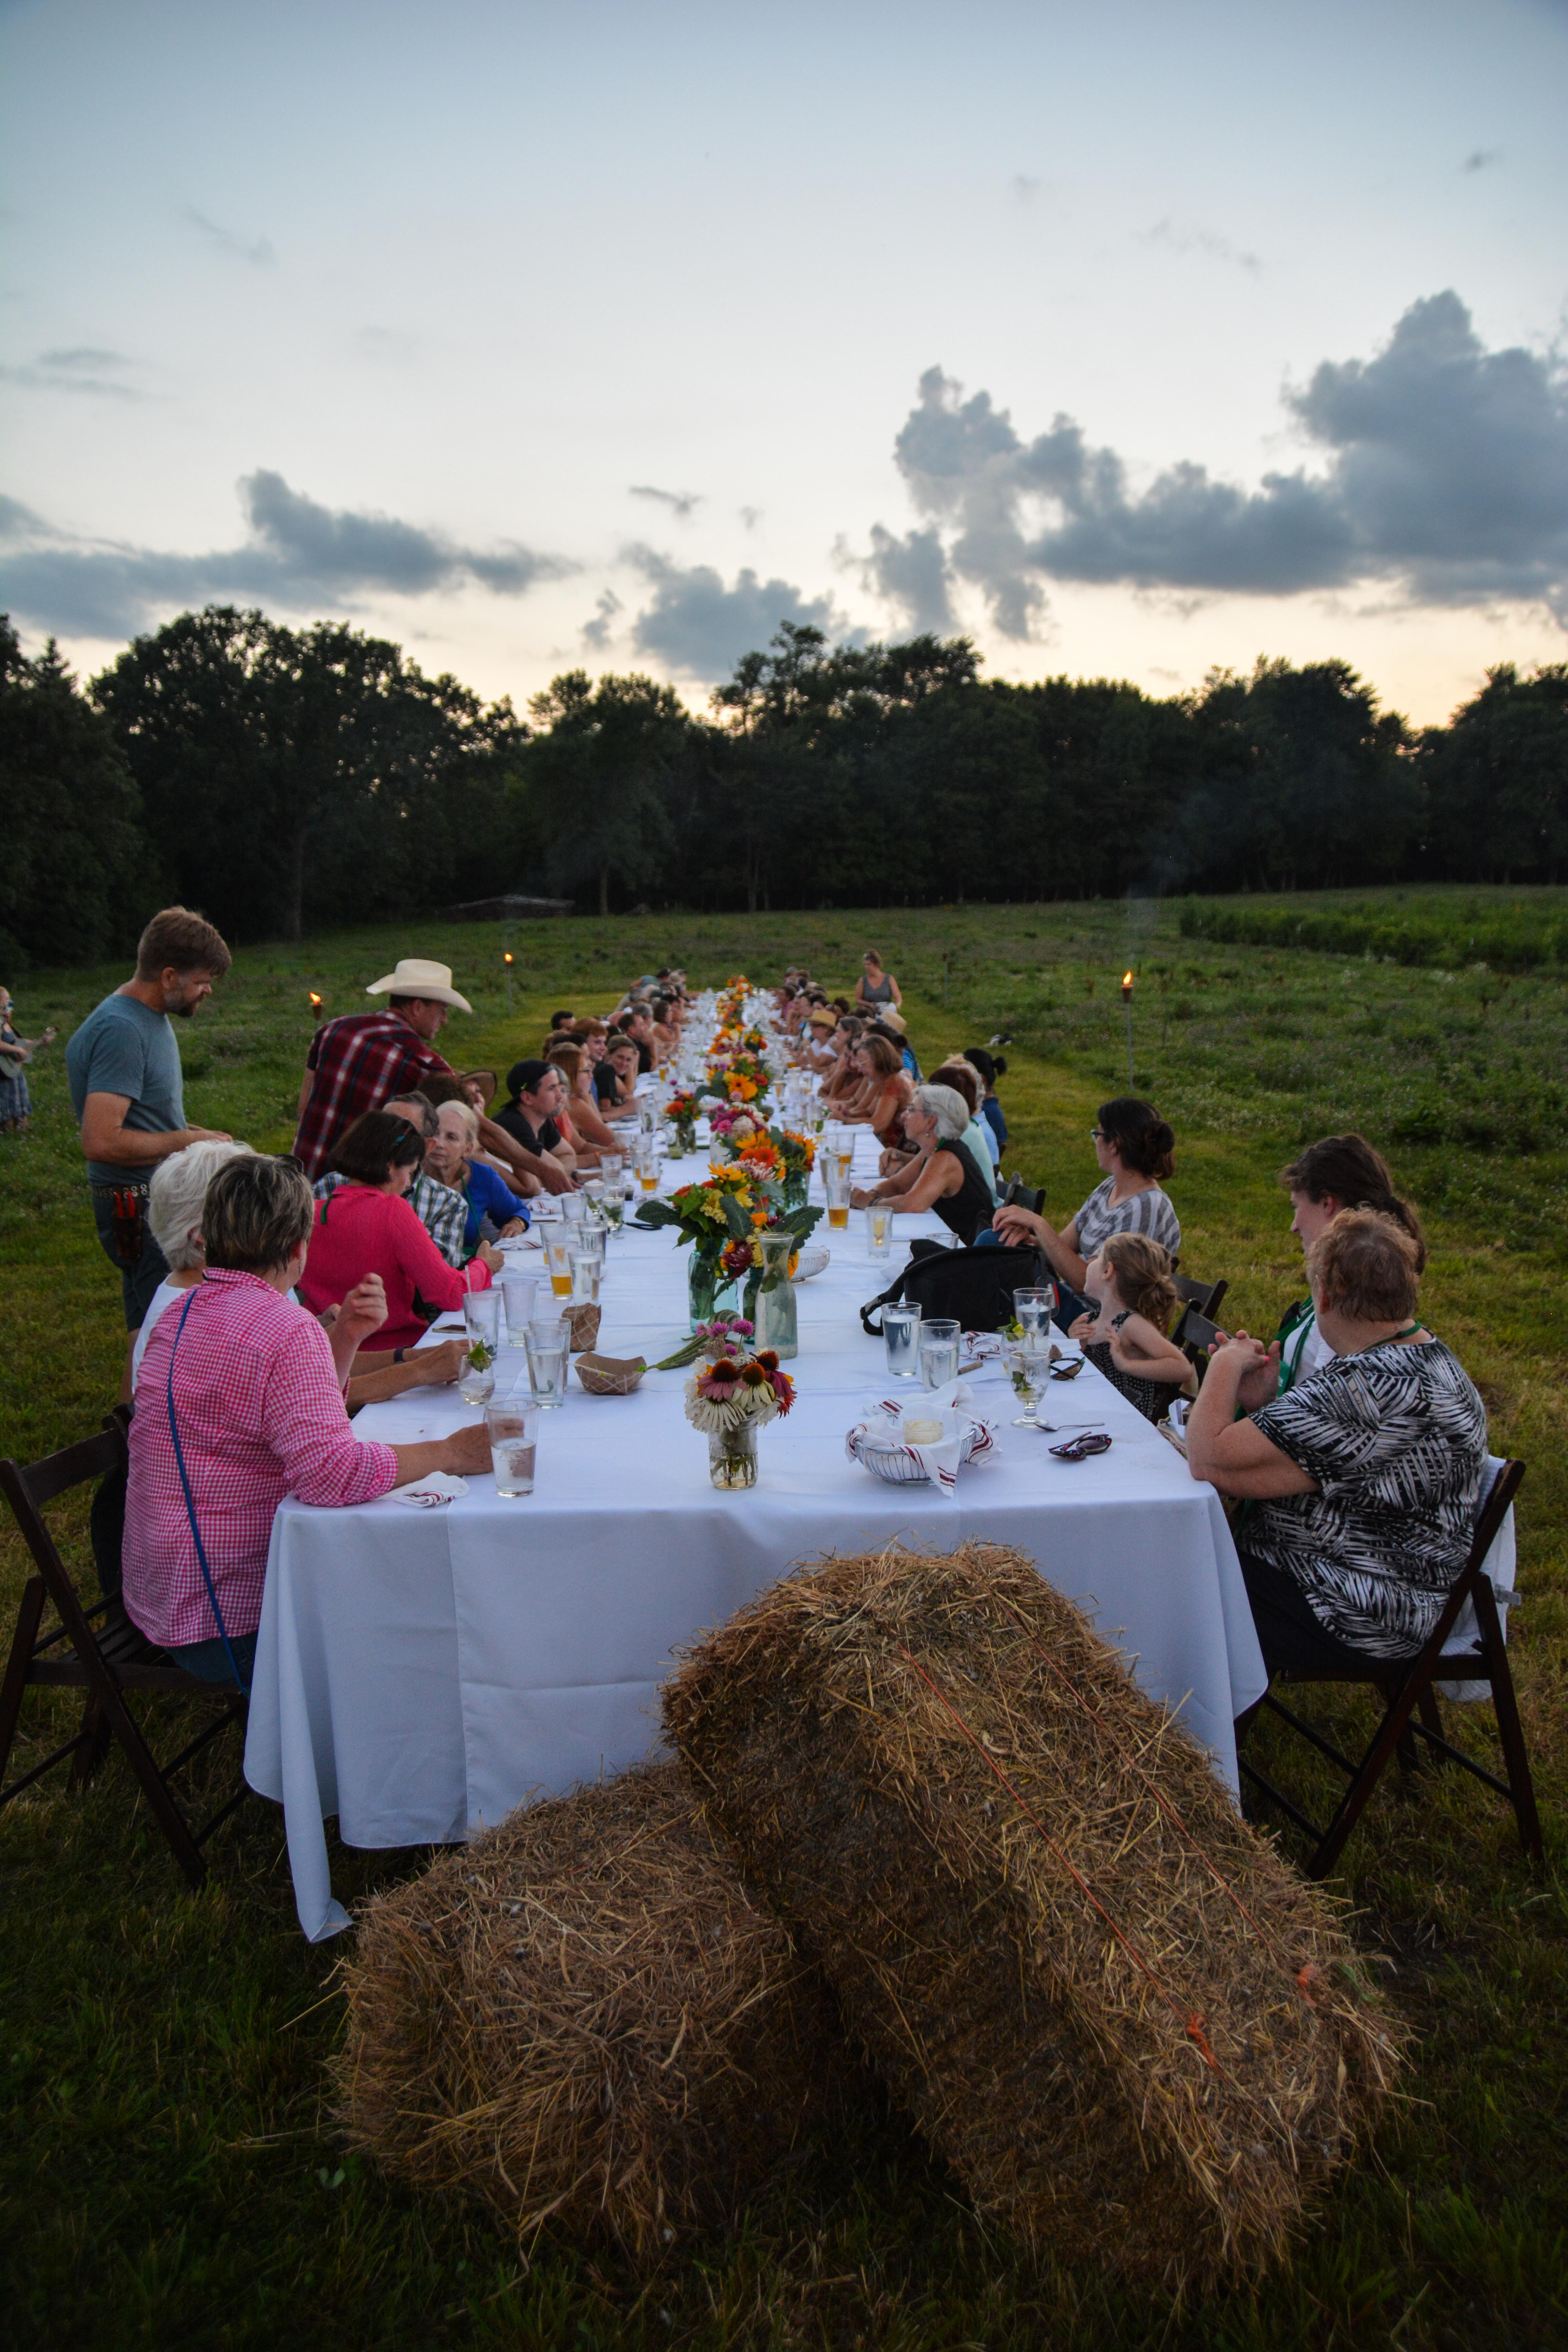 Field to Table PPA Dinner at Tangletown Gardens Farm, Minneapolis, MN - More images at Thinkingoutsidetheboxwood.com